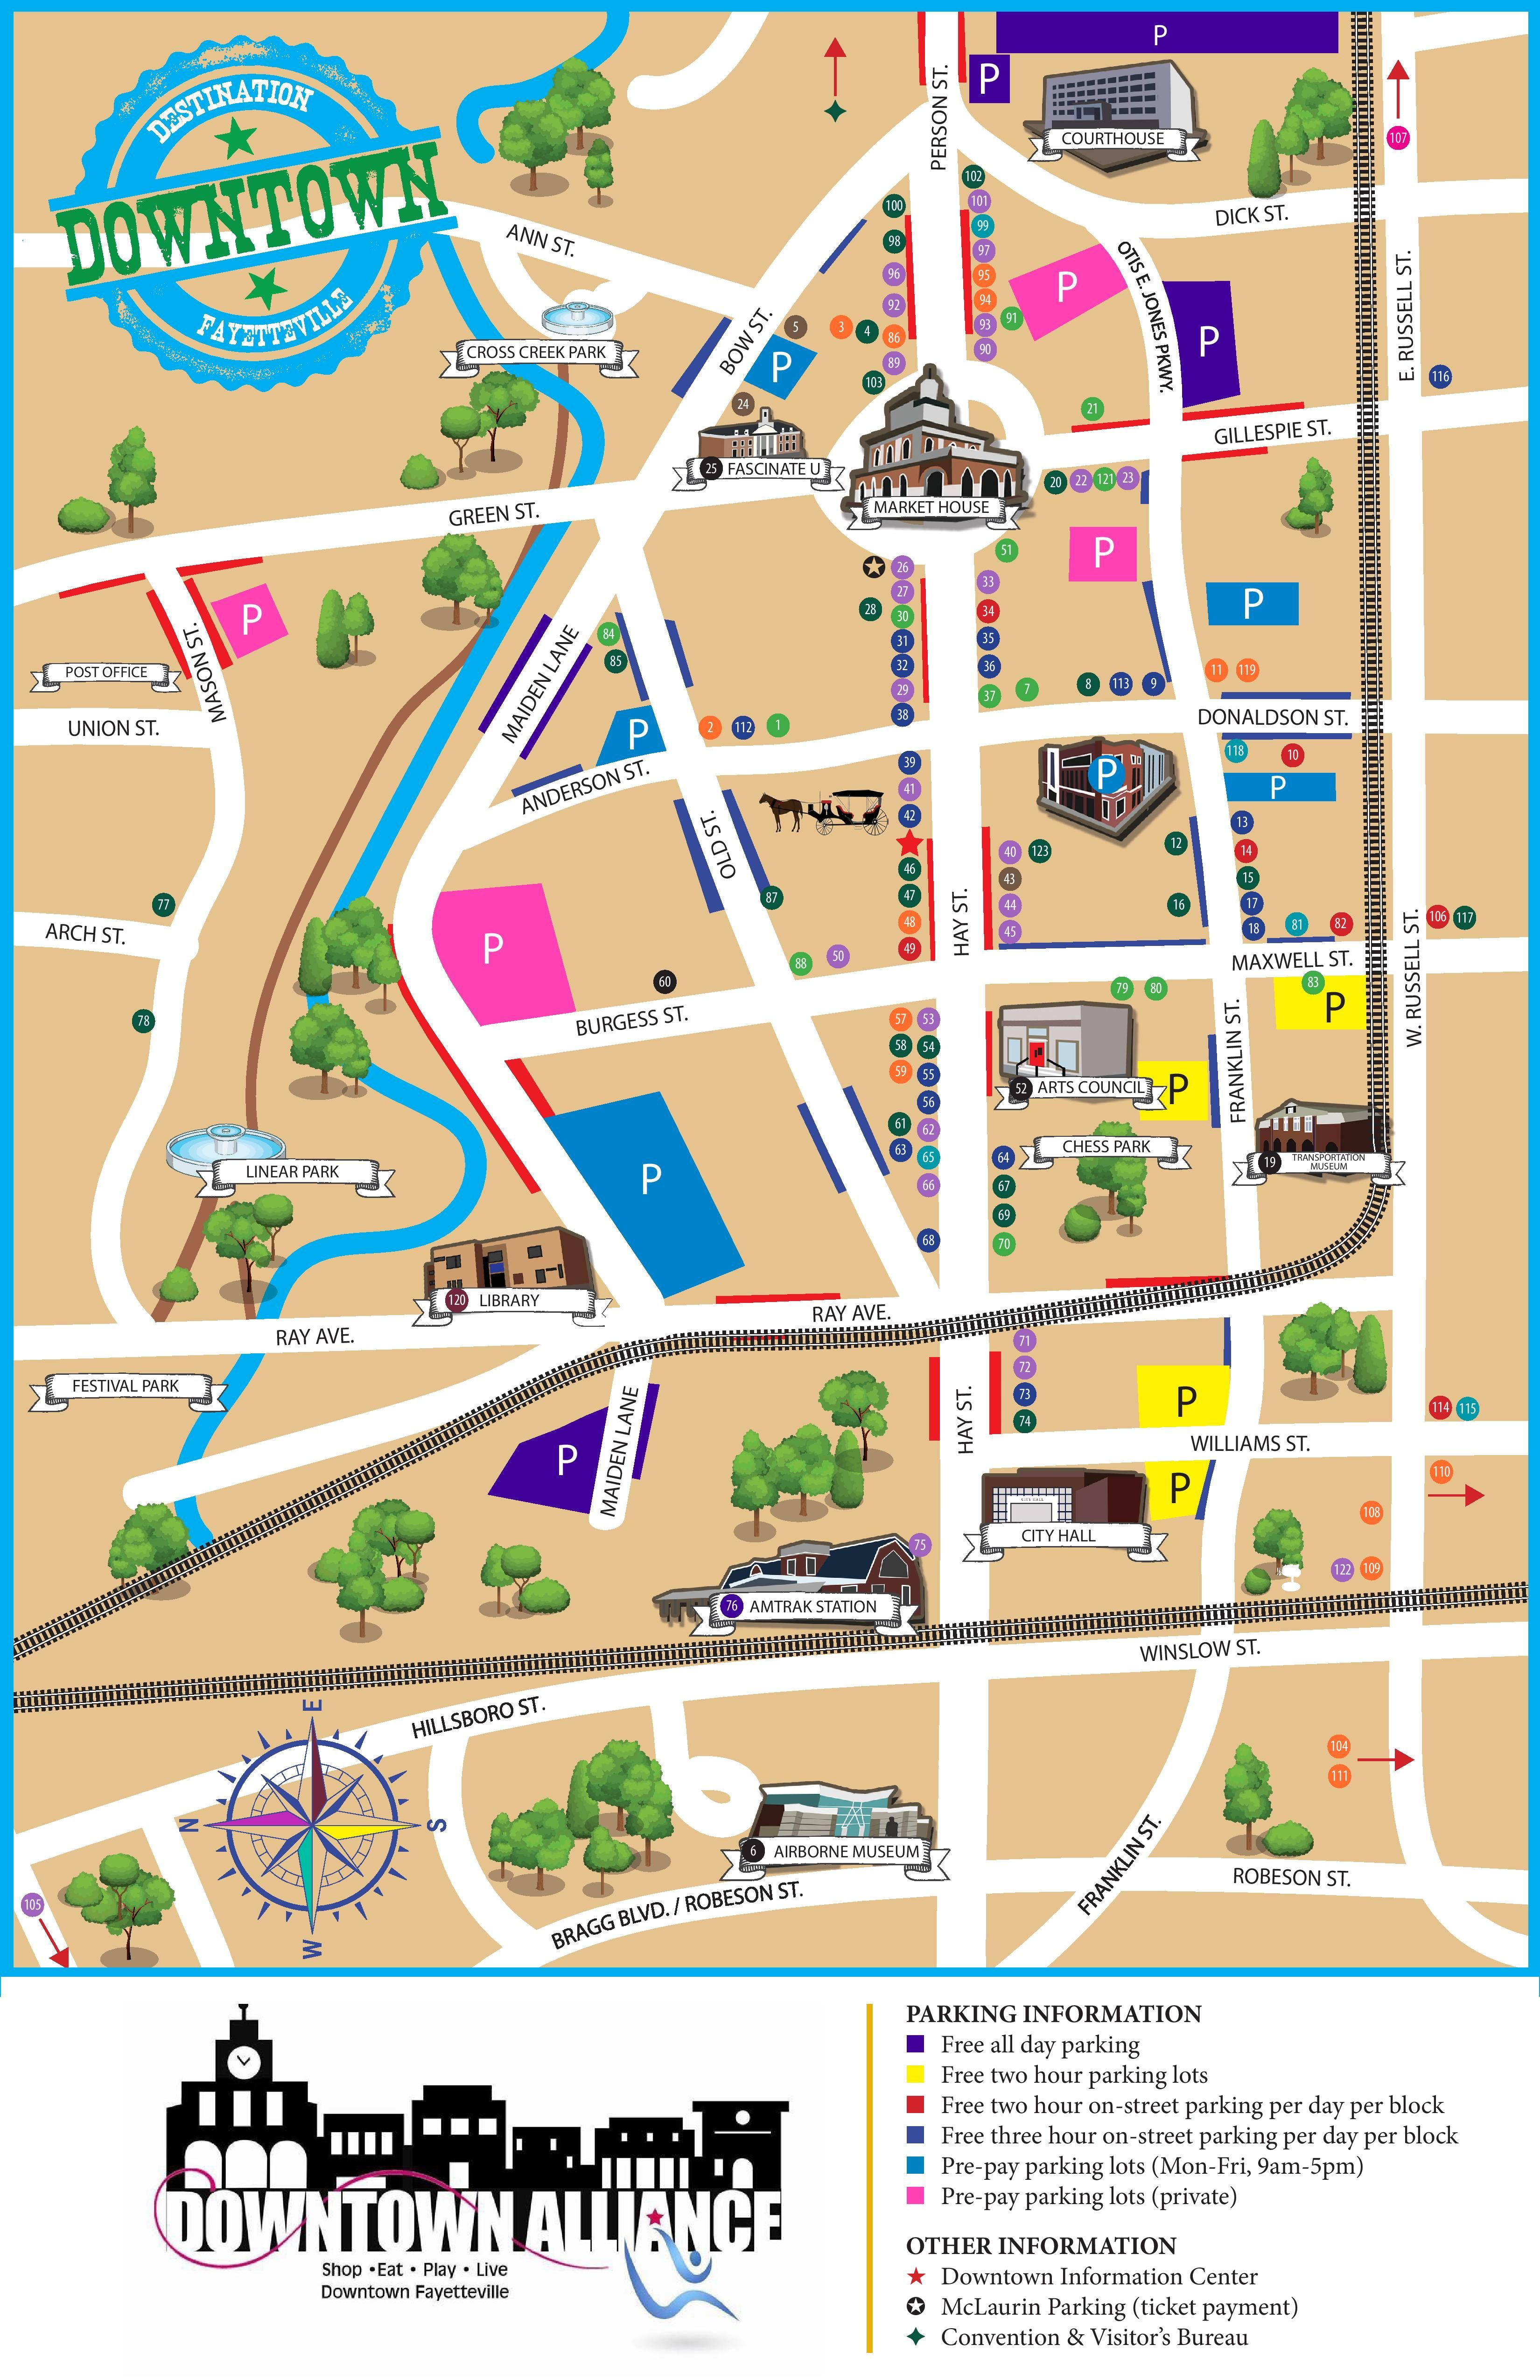 Modern map of downtown Fayetteville with current landmarks to help